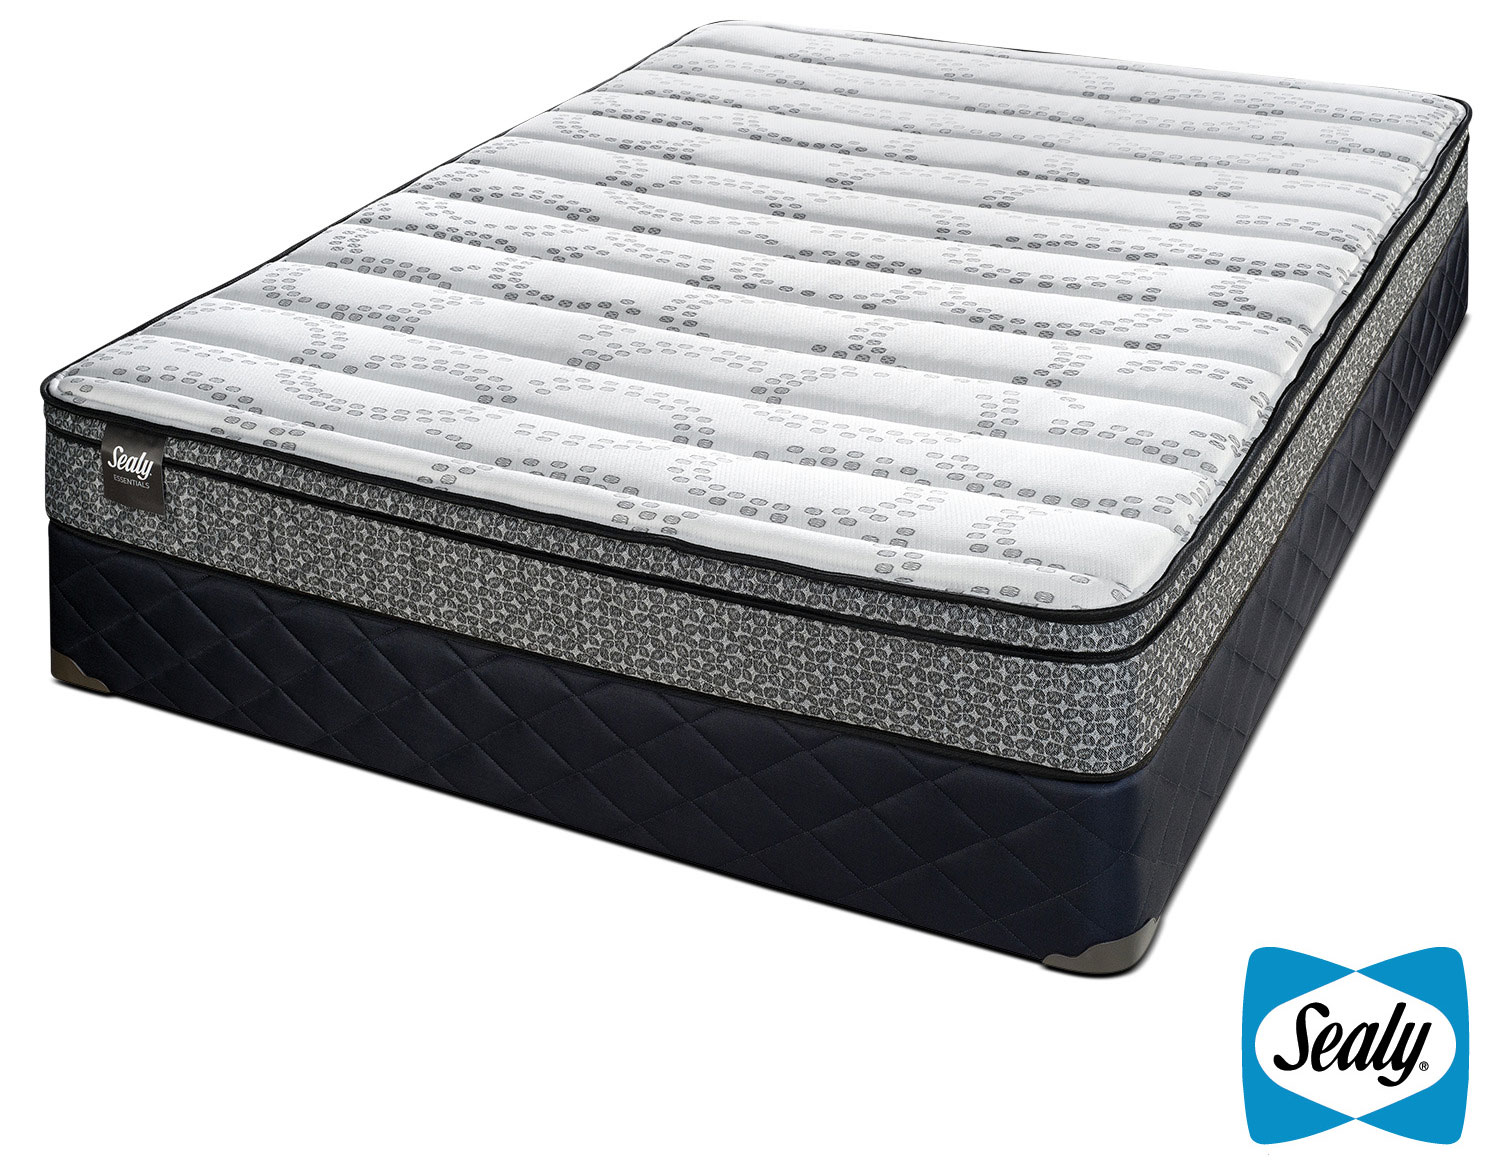 Sealy Imagine Cushion Firm Full Mattress and Boxspring Set